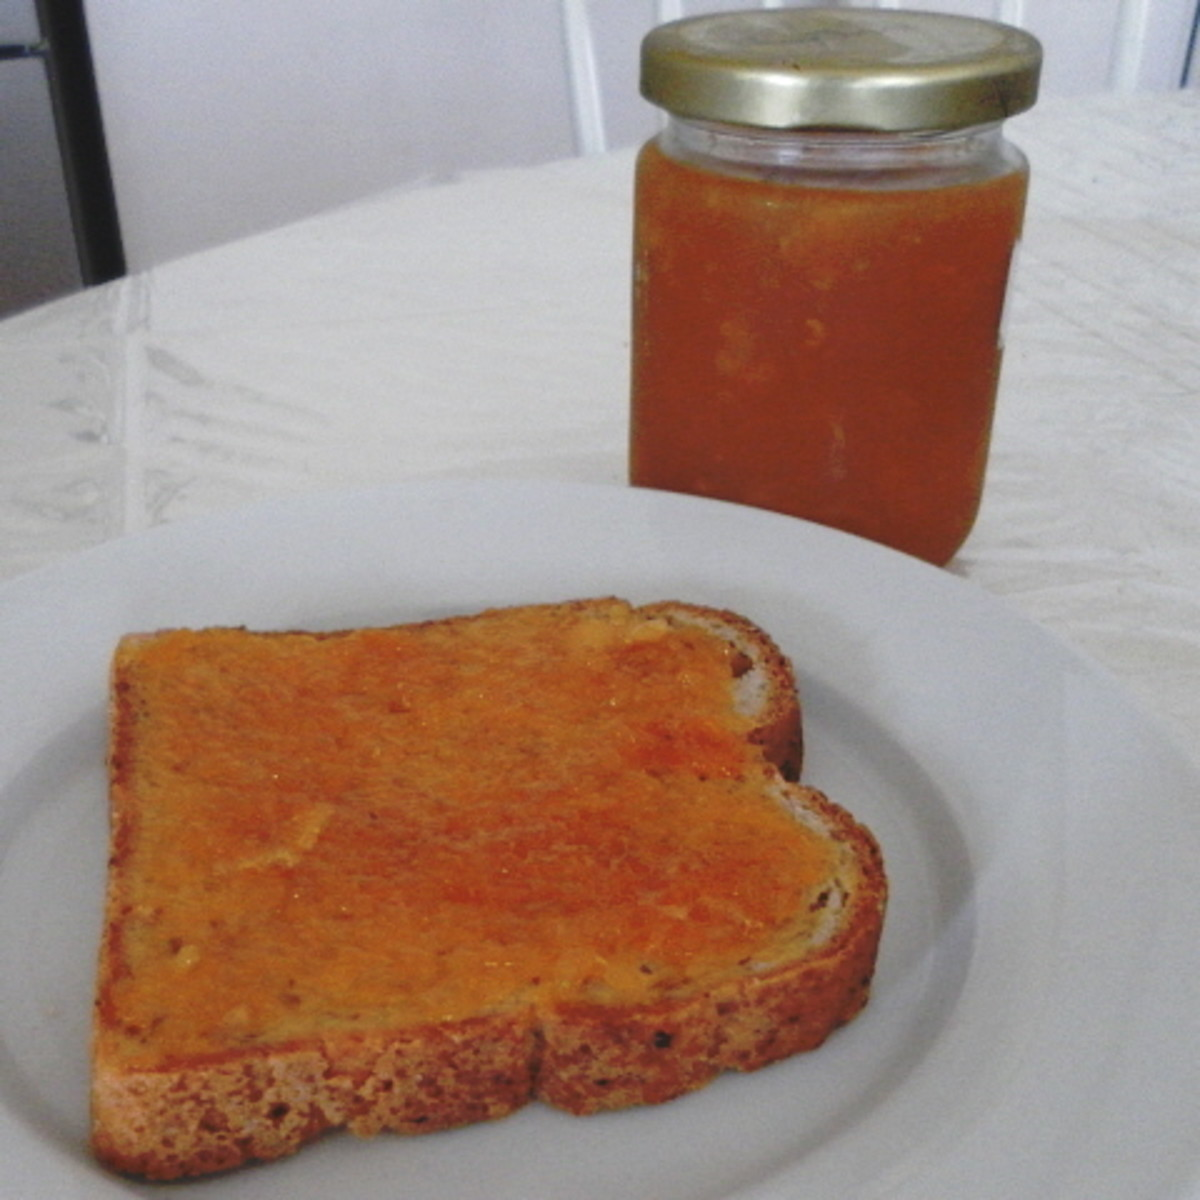 Spread homemade navel orange jam on a slice of toast. It is simply delicious!